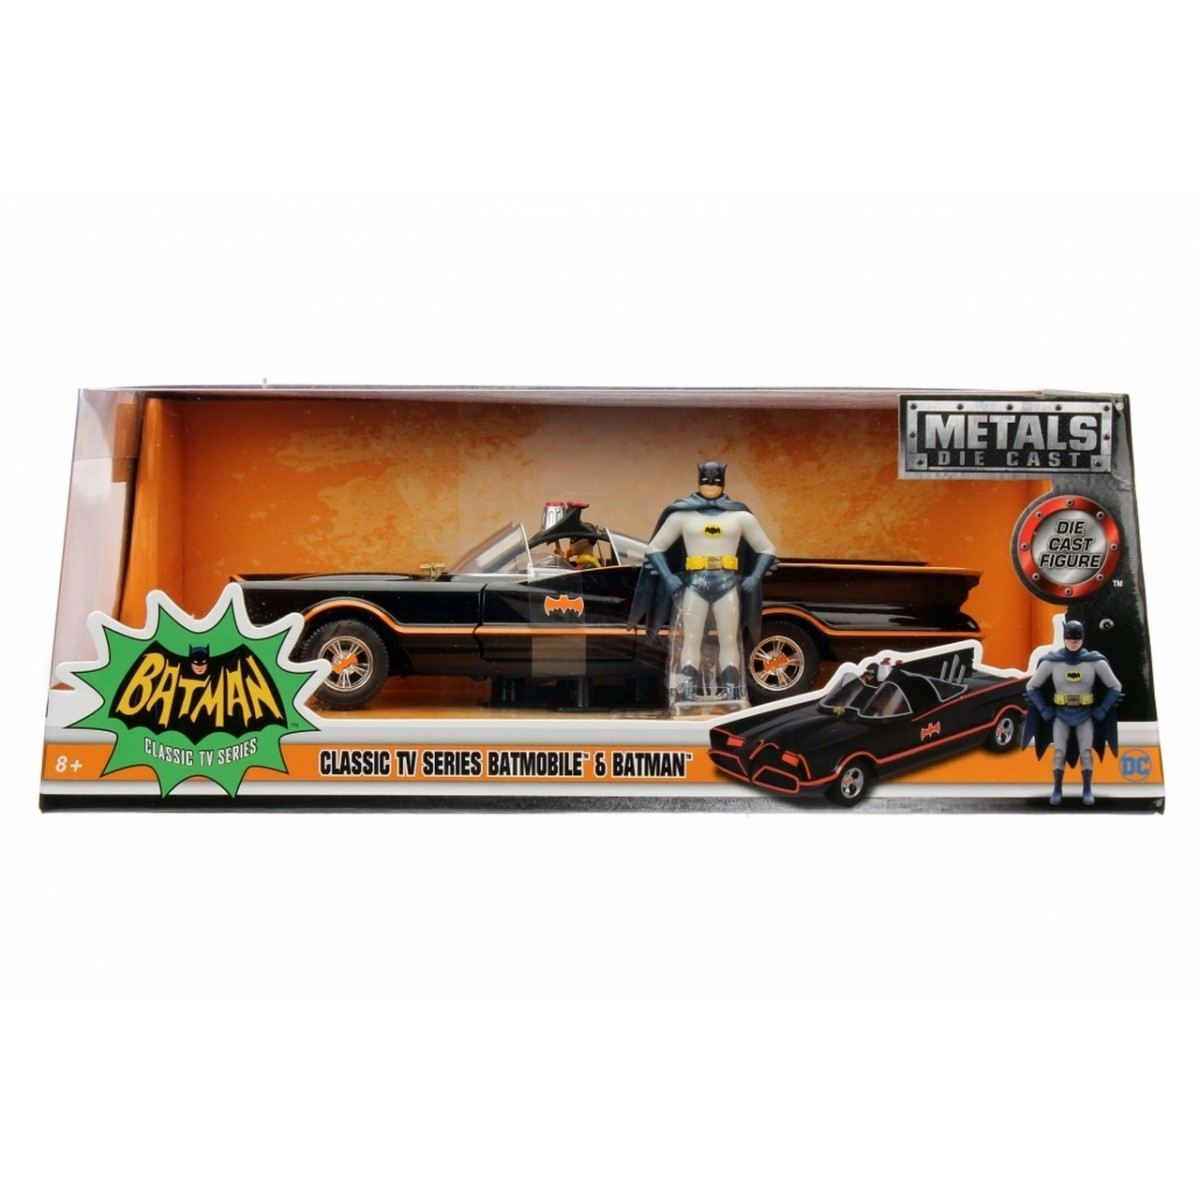 Metals Die Cast Batmobile Clássico: Série TV com Miniatura do Batman e Robin Escala 1/24